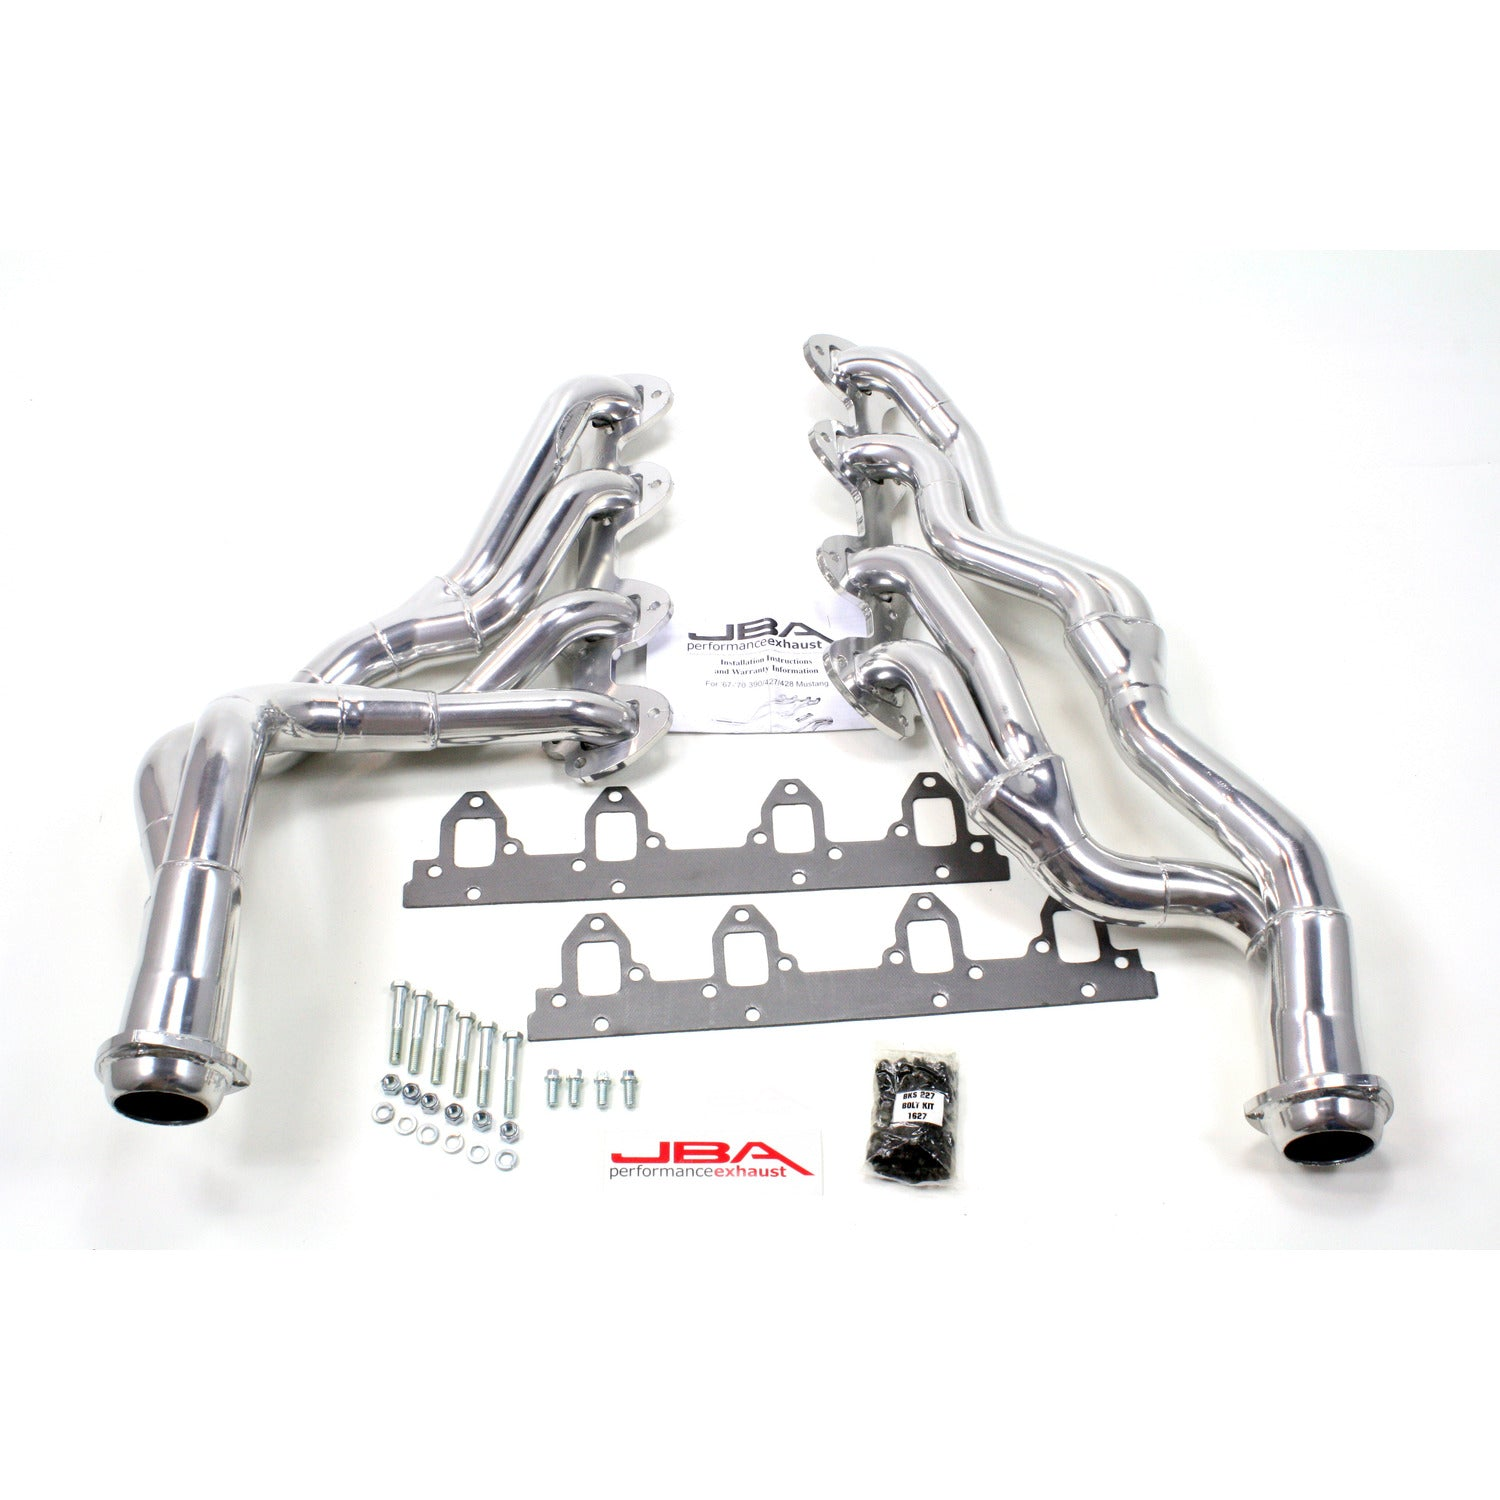 "JBA Performance Exhaust 6655SJS 1 3/4"" Header Long Tube Stainless Steel 67-70 Mustang 390/427/428 Cobra Jet Silver Ceramic"